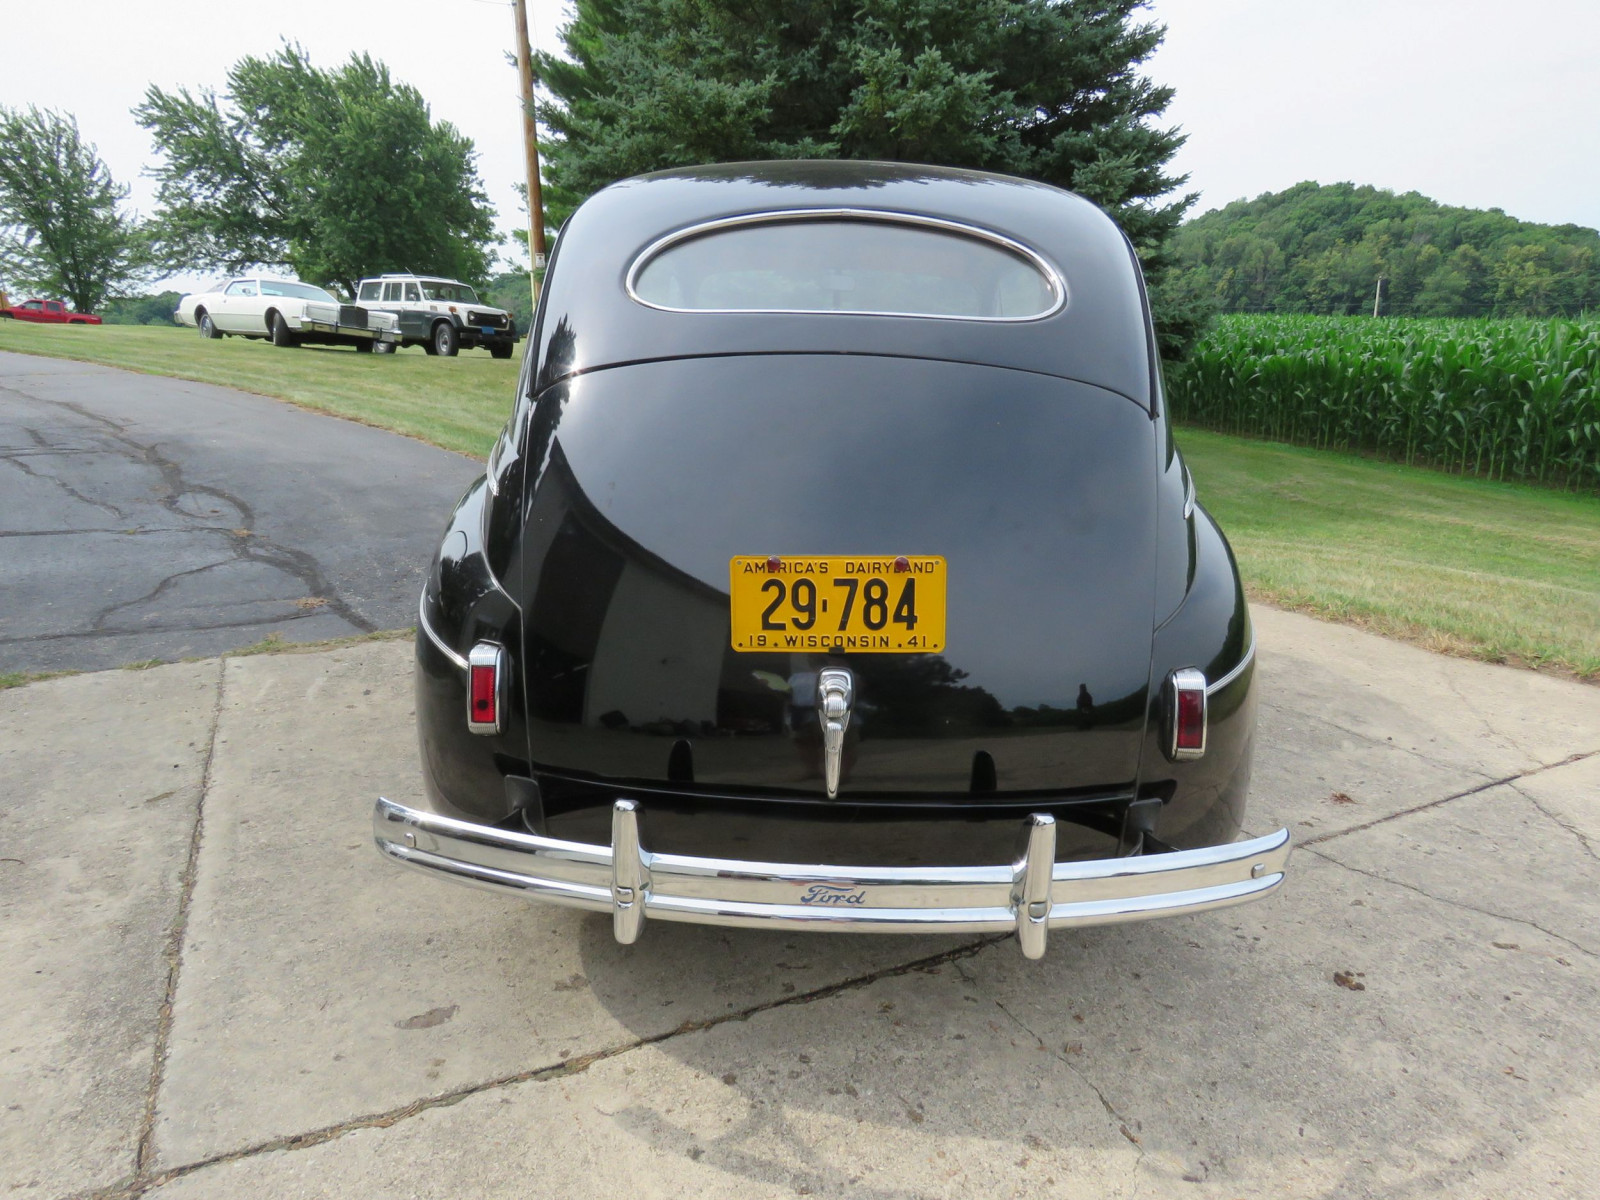 1941 Ford Super Deluxe Tudor Sedan - Image 5